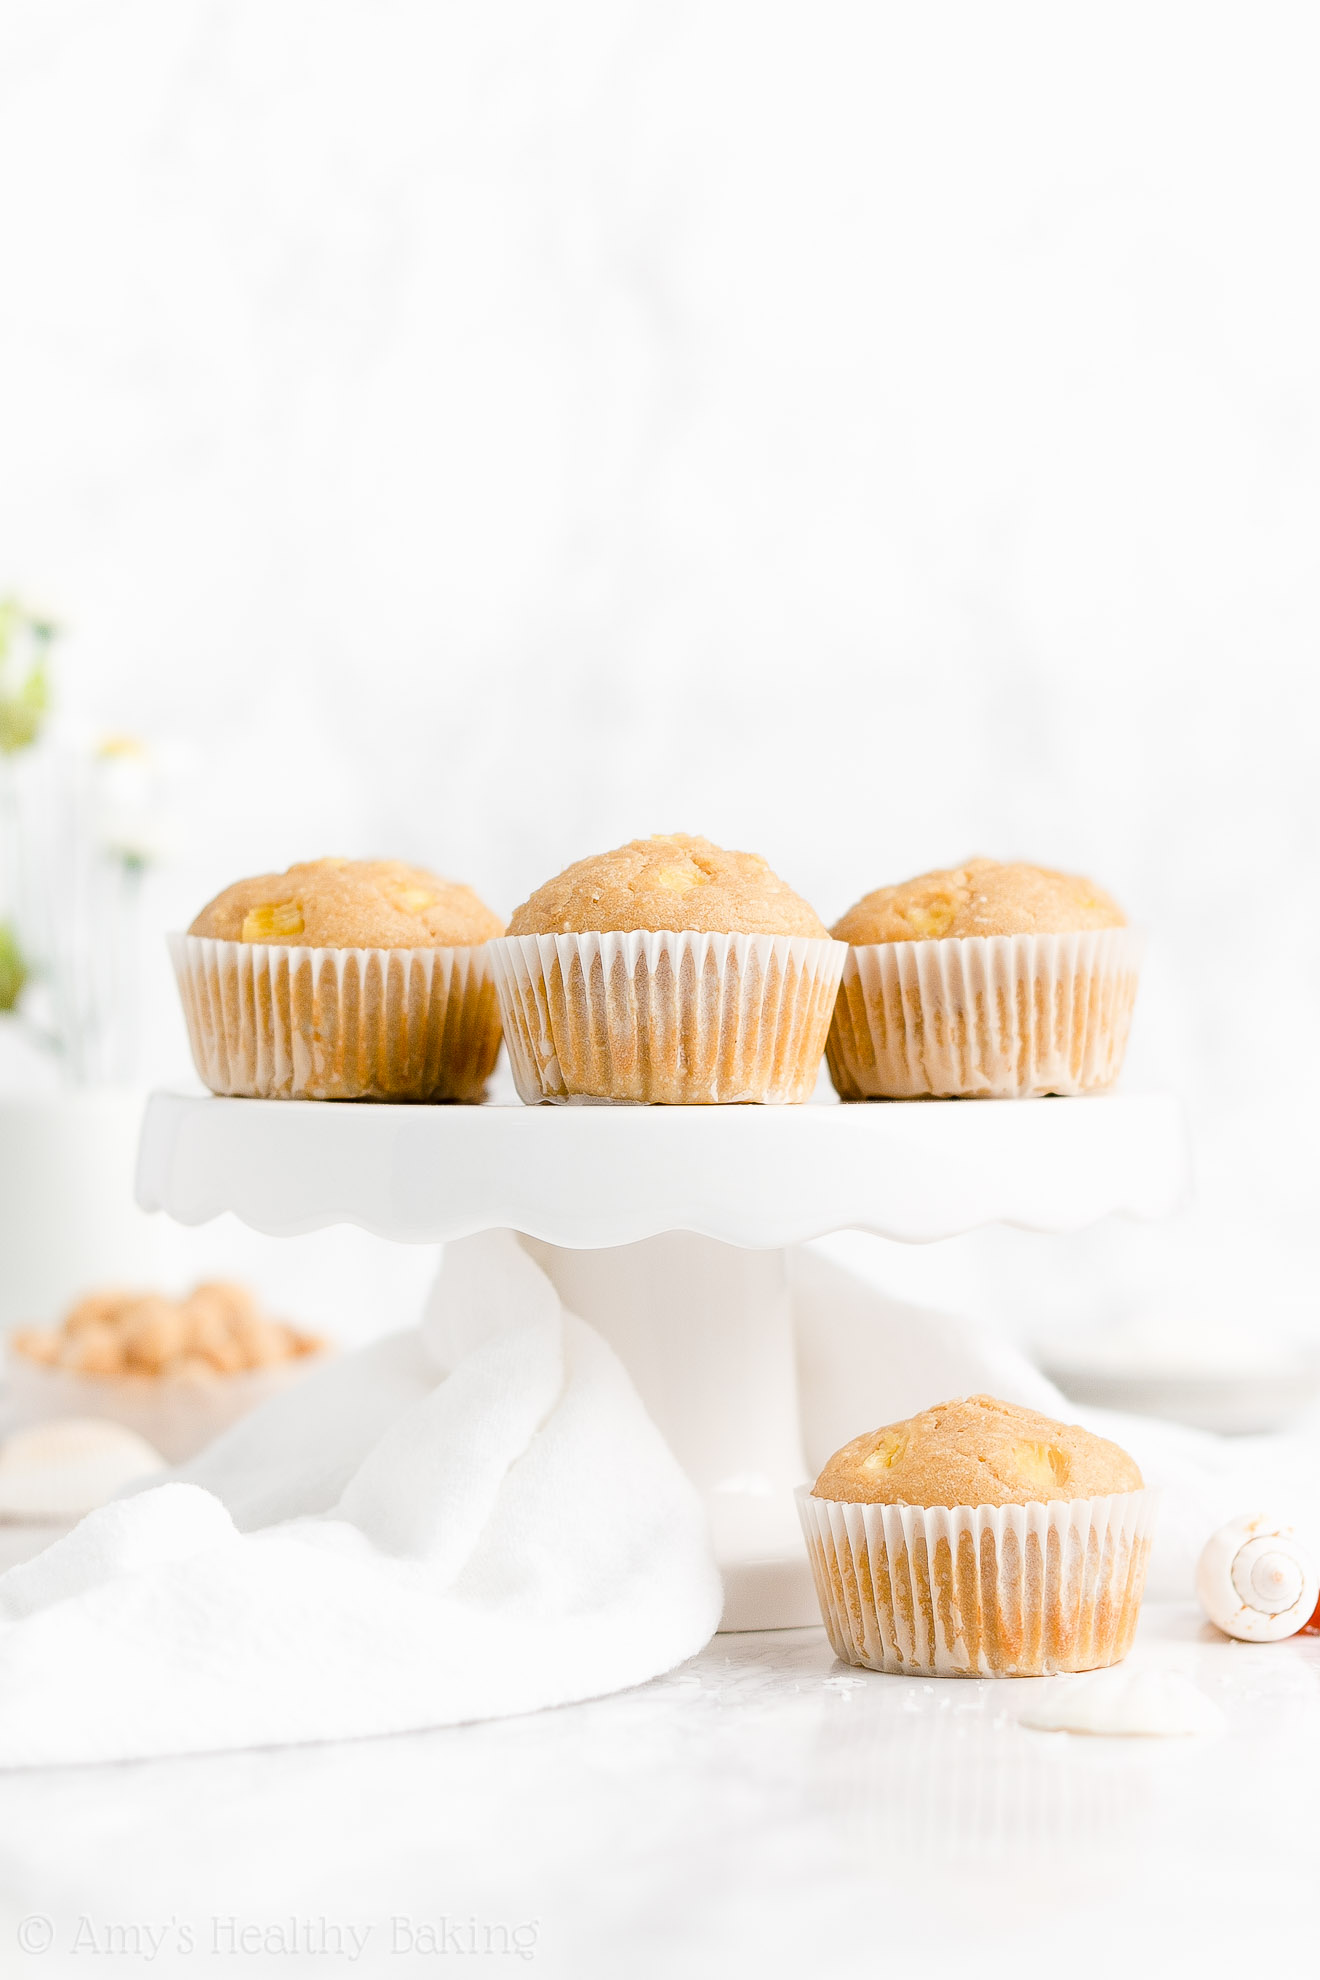 Clean Eating Healthy Sugar Free Pineapple, Coconut & Macadamia Nut Muffins